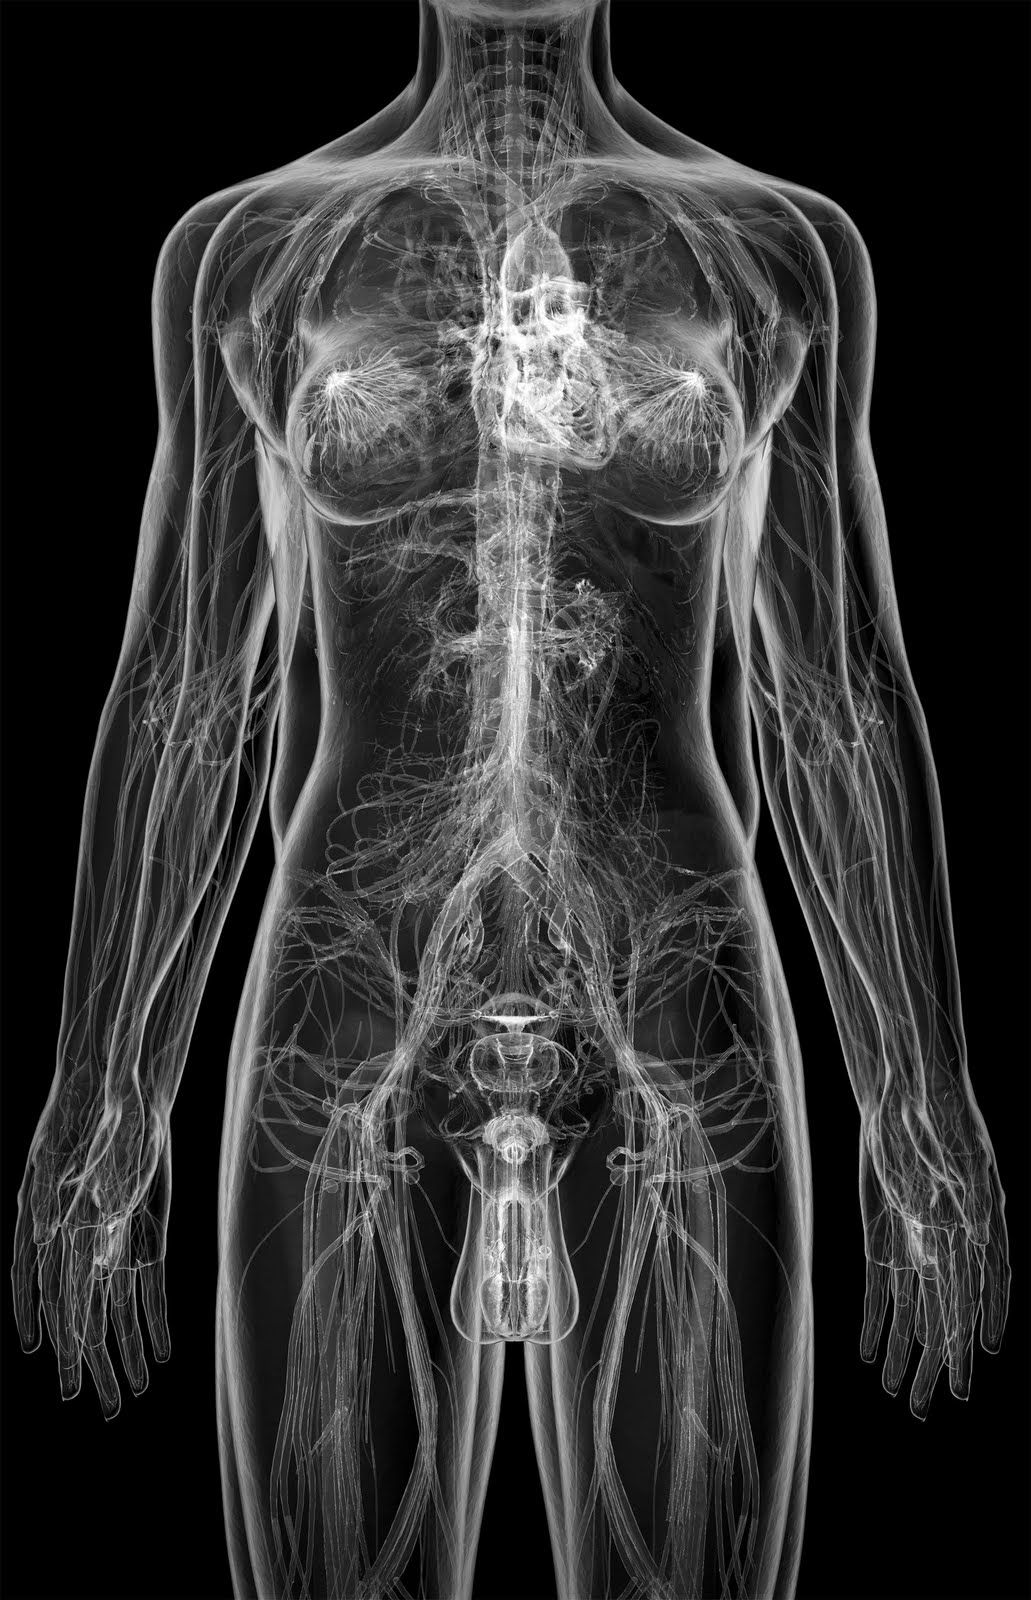 Pin By Chanel Kang On Fyp Mood Pinterest Anatomy Human Body And